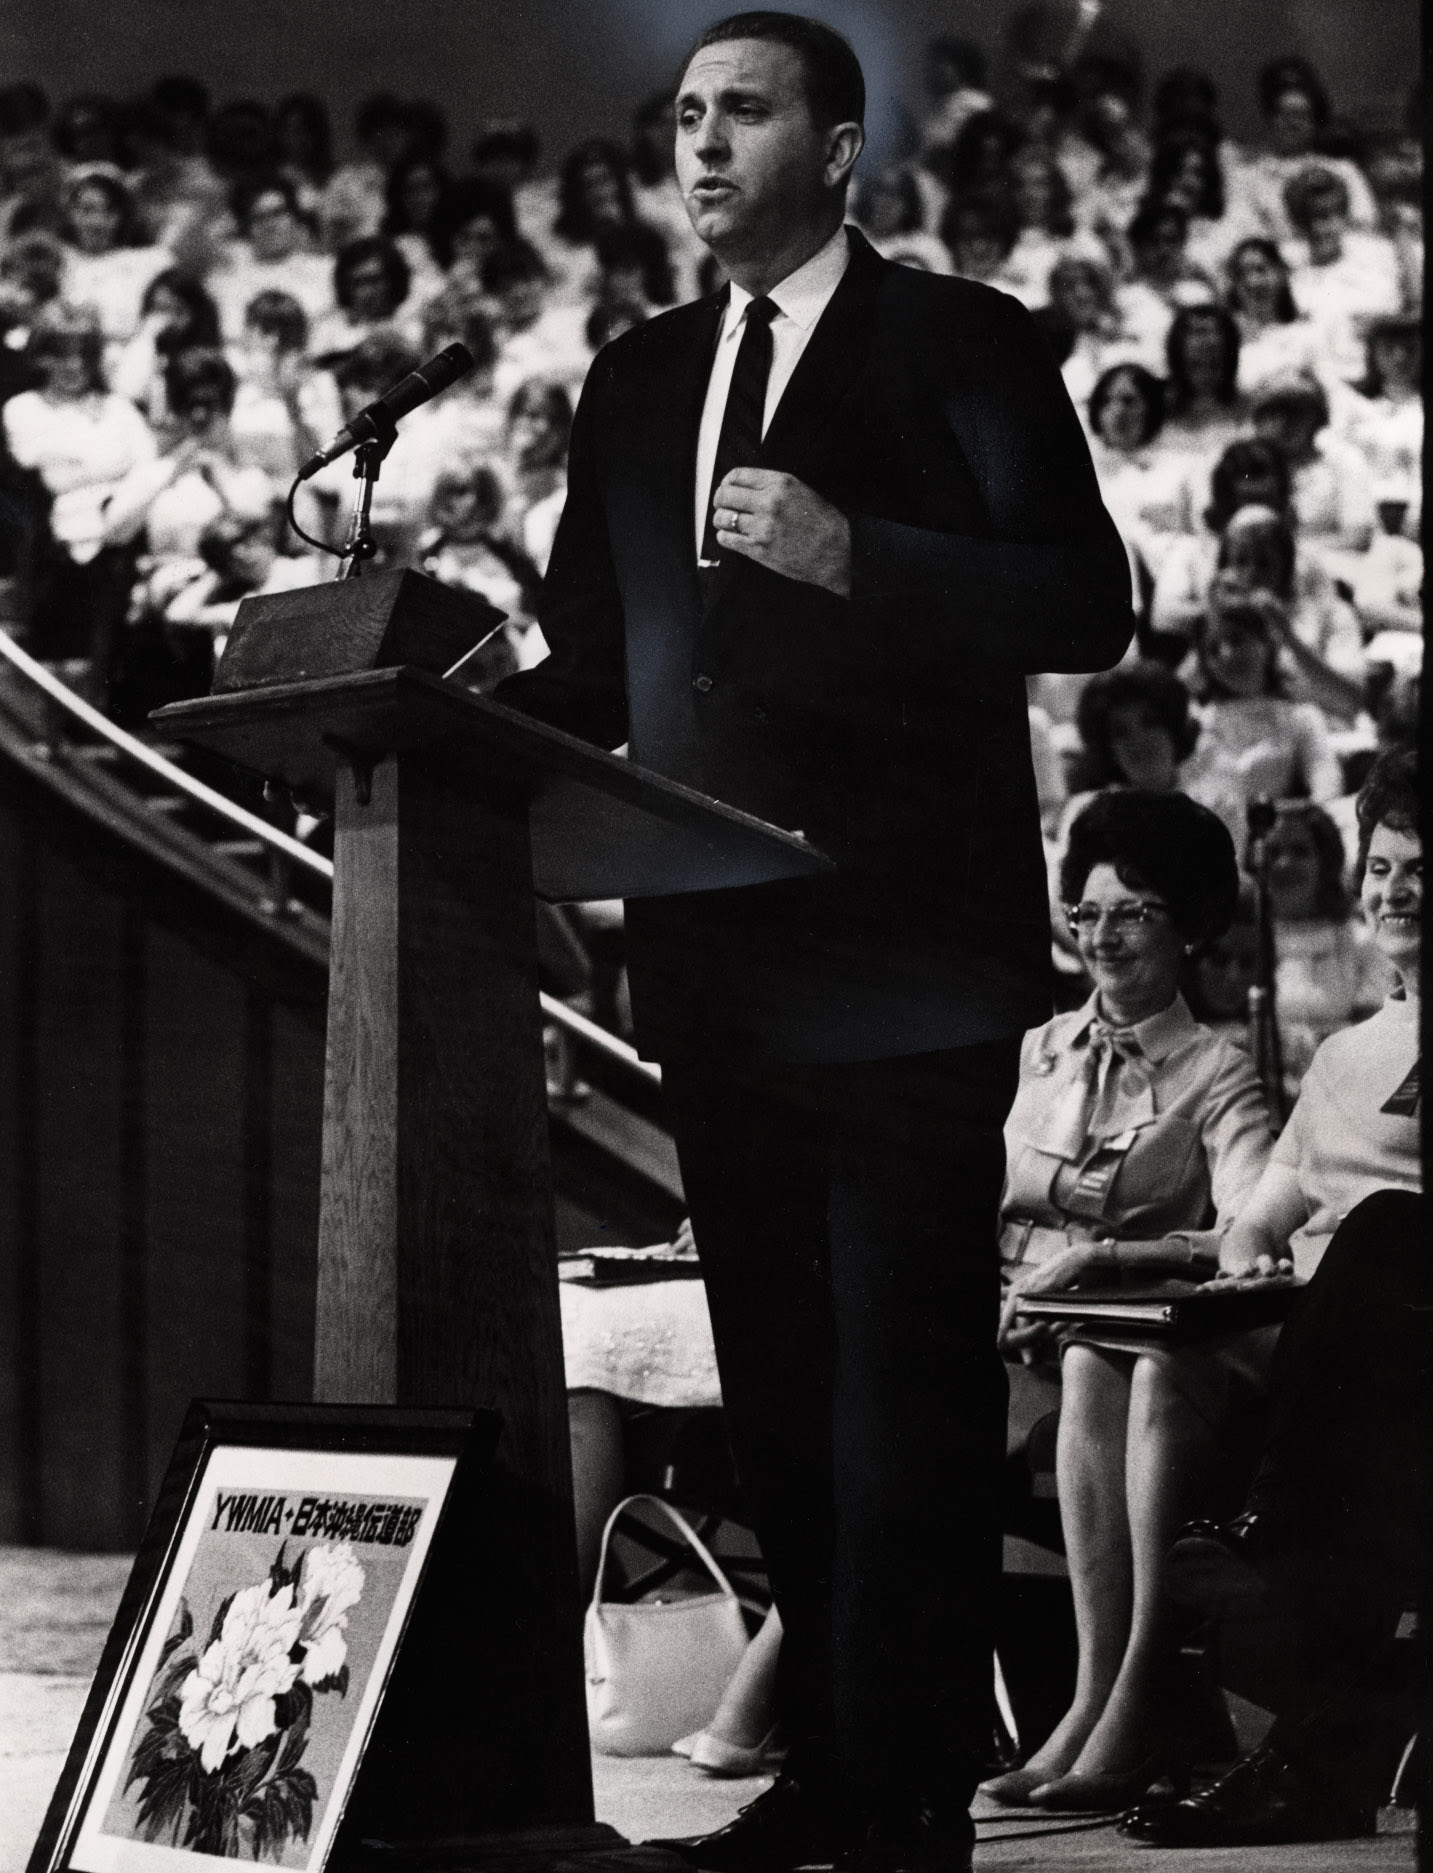 (Tribune file photo) Elder Thomas S. Monson speaks in 1968.